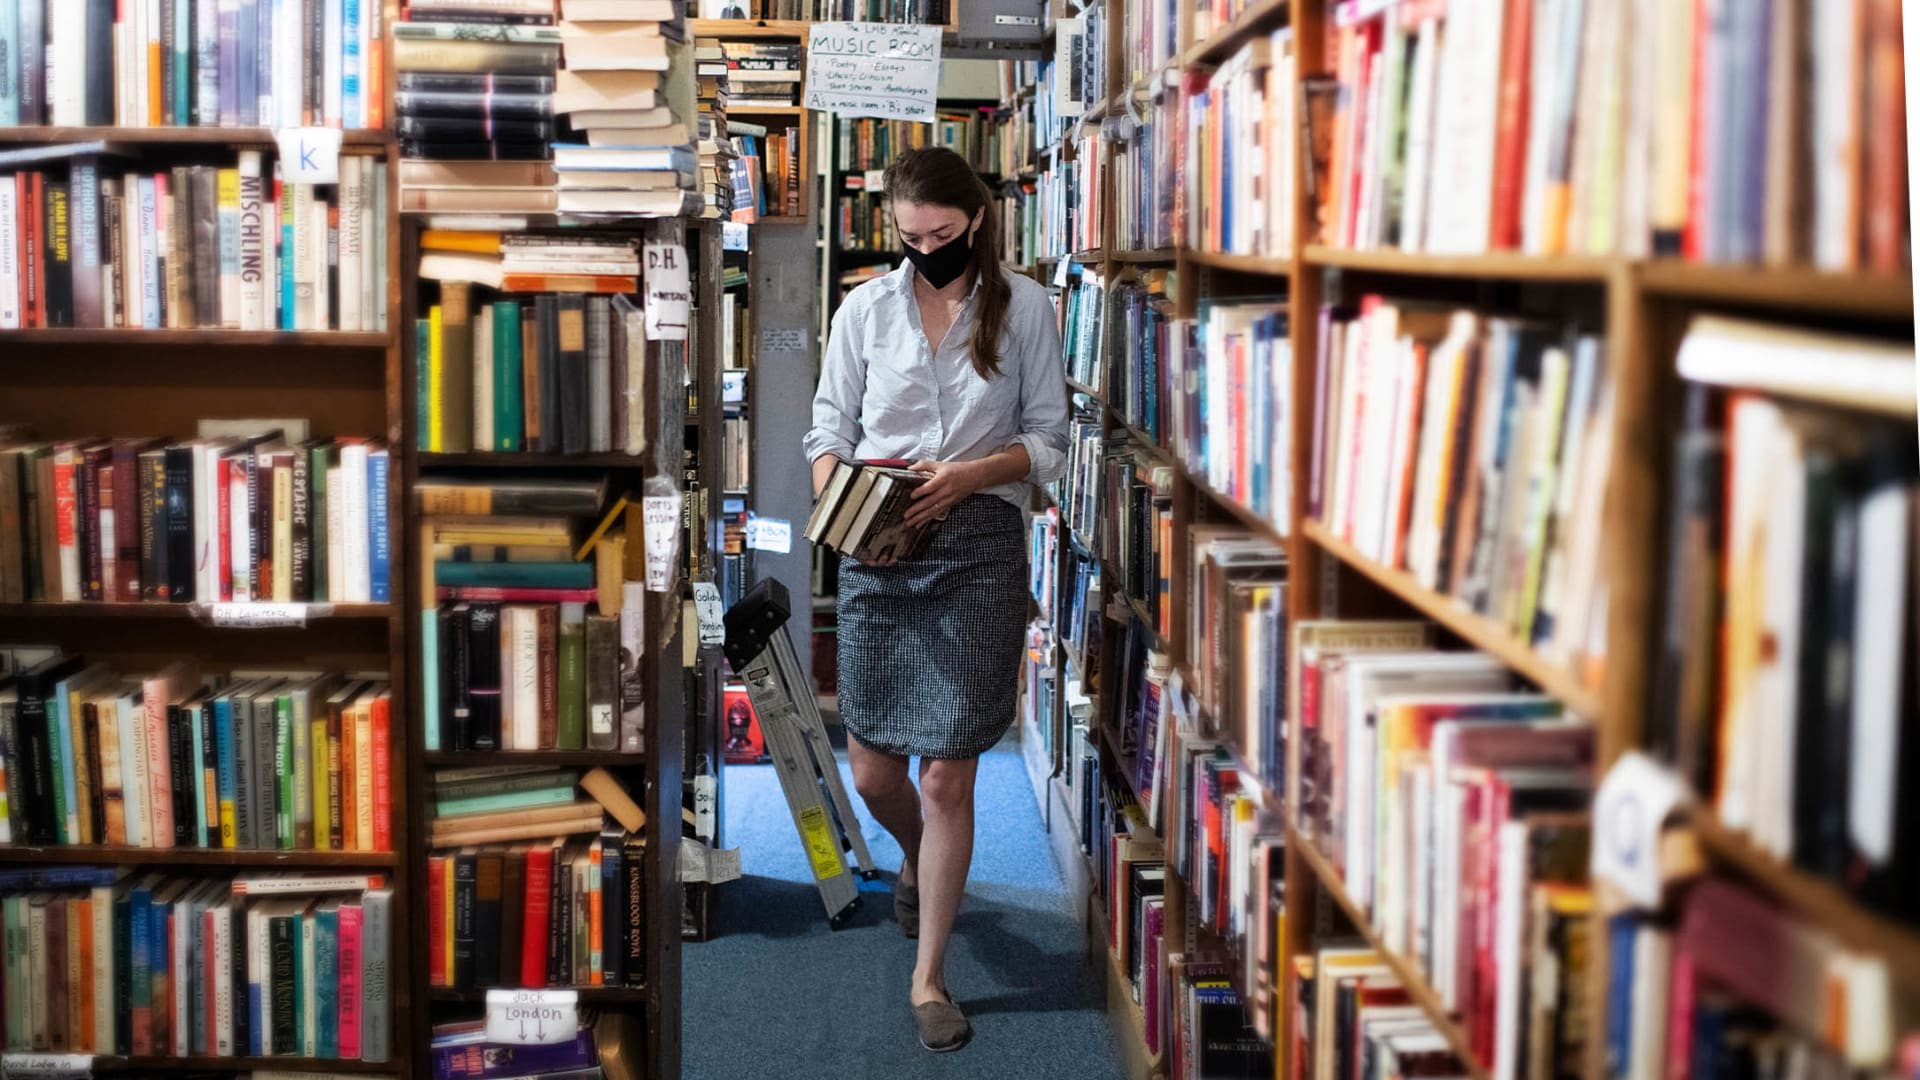 Hélène Golay stocks inventory at Capitol Hill Books in Washington, D.C., on June 1, the day the store reopened to indoor customers after being closed for several months because of Covid-19.